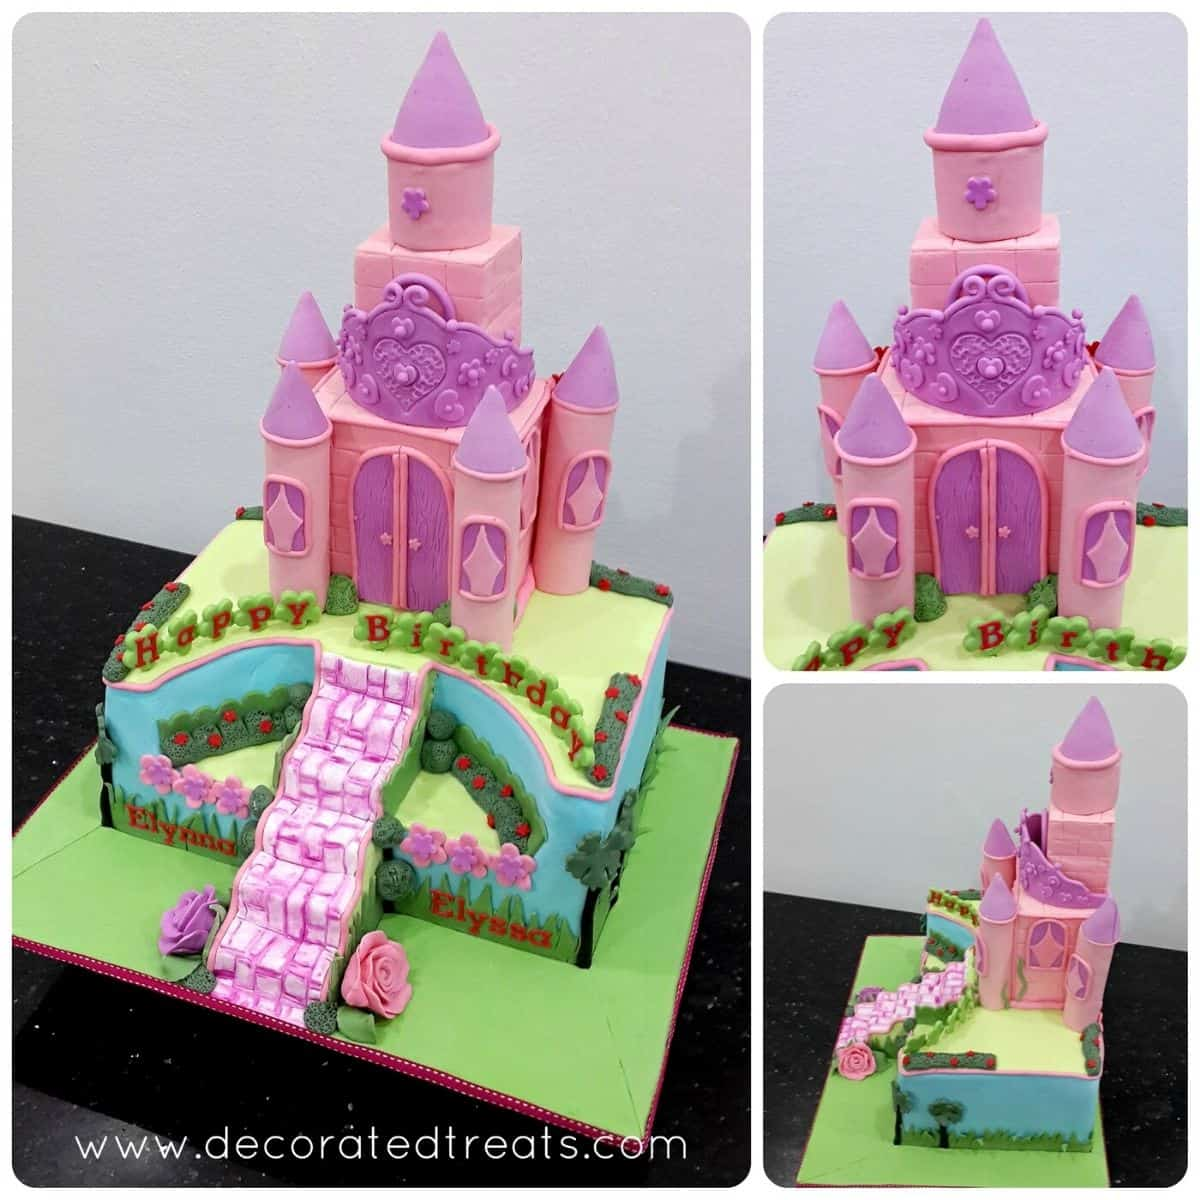 Poster for a pink and purple princess castle cake on a green cake